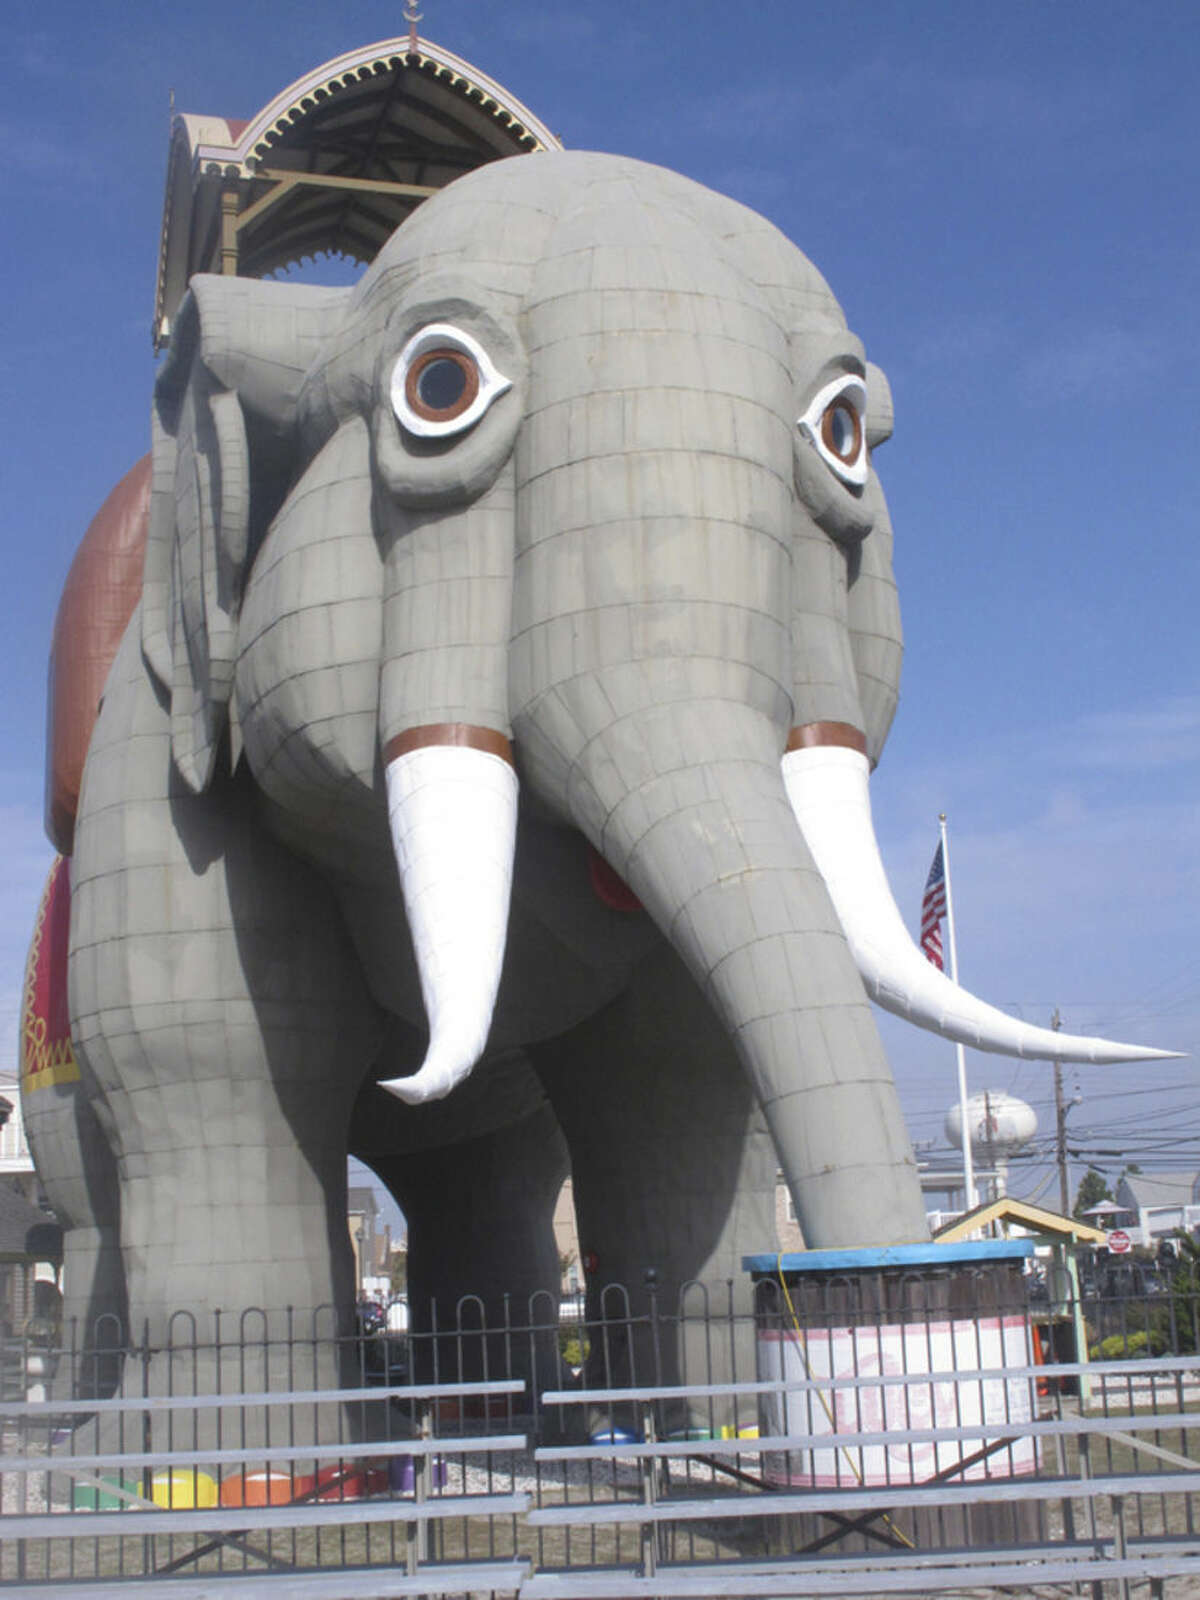 This Sept. 29, 2015 photo shows Lucy The Elephant, the giant wood and tin elephant in Margate N.J. that is a national historic landmark. The group that maintains Lucy needs to raise tens of thousands of dollars to replace rotting wood atop her passenger carriage, and to pay for a head-to-toe coat of paint for the 134-year-old tourist attraction.(AP Photo/Wayne Parry)